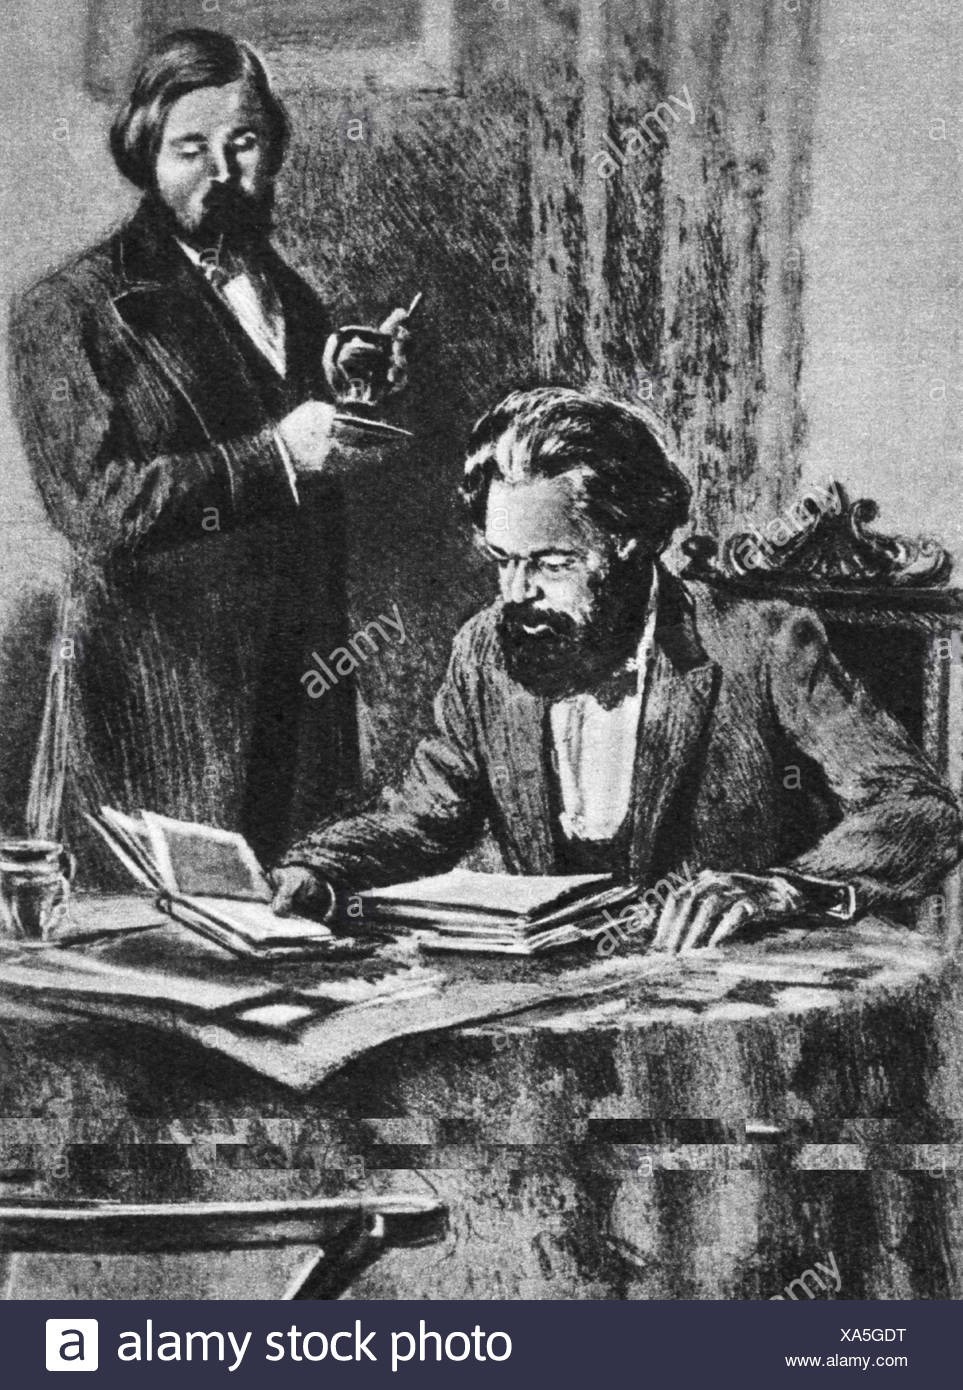 Marx, Karl, 5.5.1818 - 14.3.1883, German philosopher and journalist, half length, with Friedrich Engels, working, drawing by N. N. Zhukov, 20th century Stock Photo - Alamy